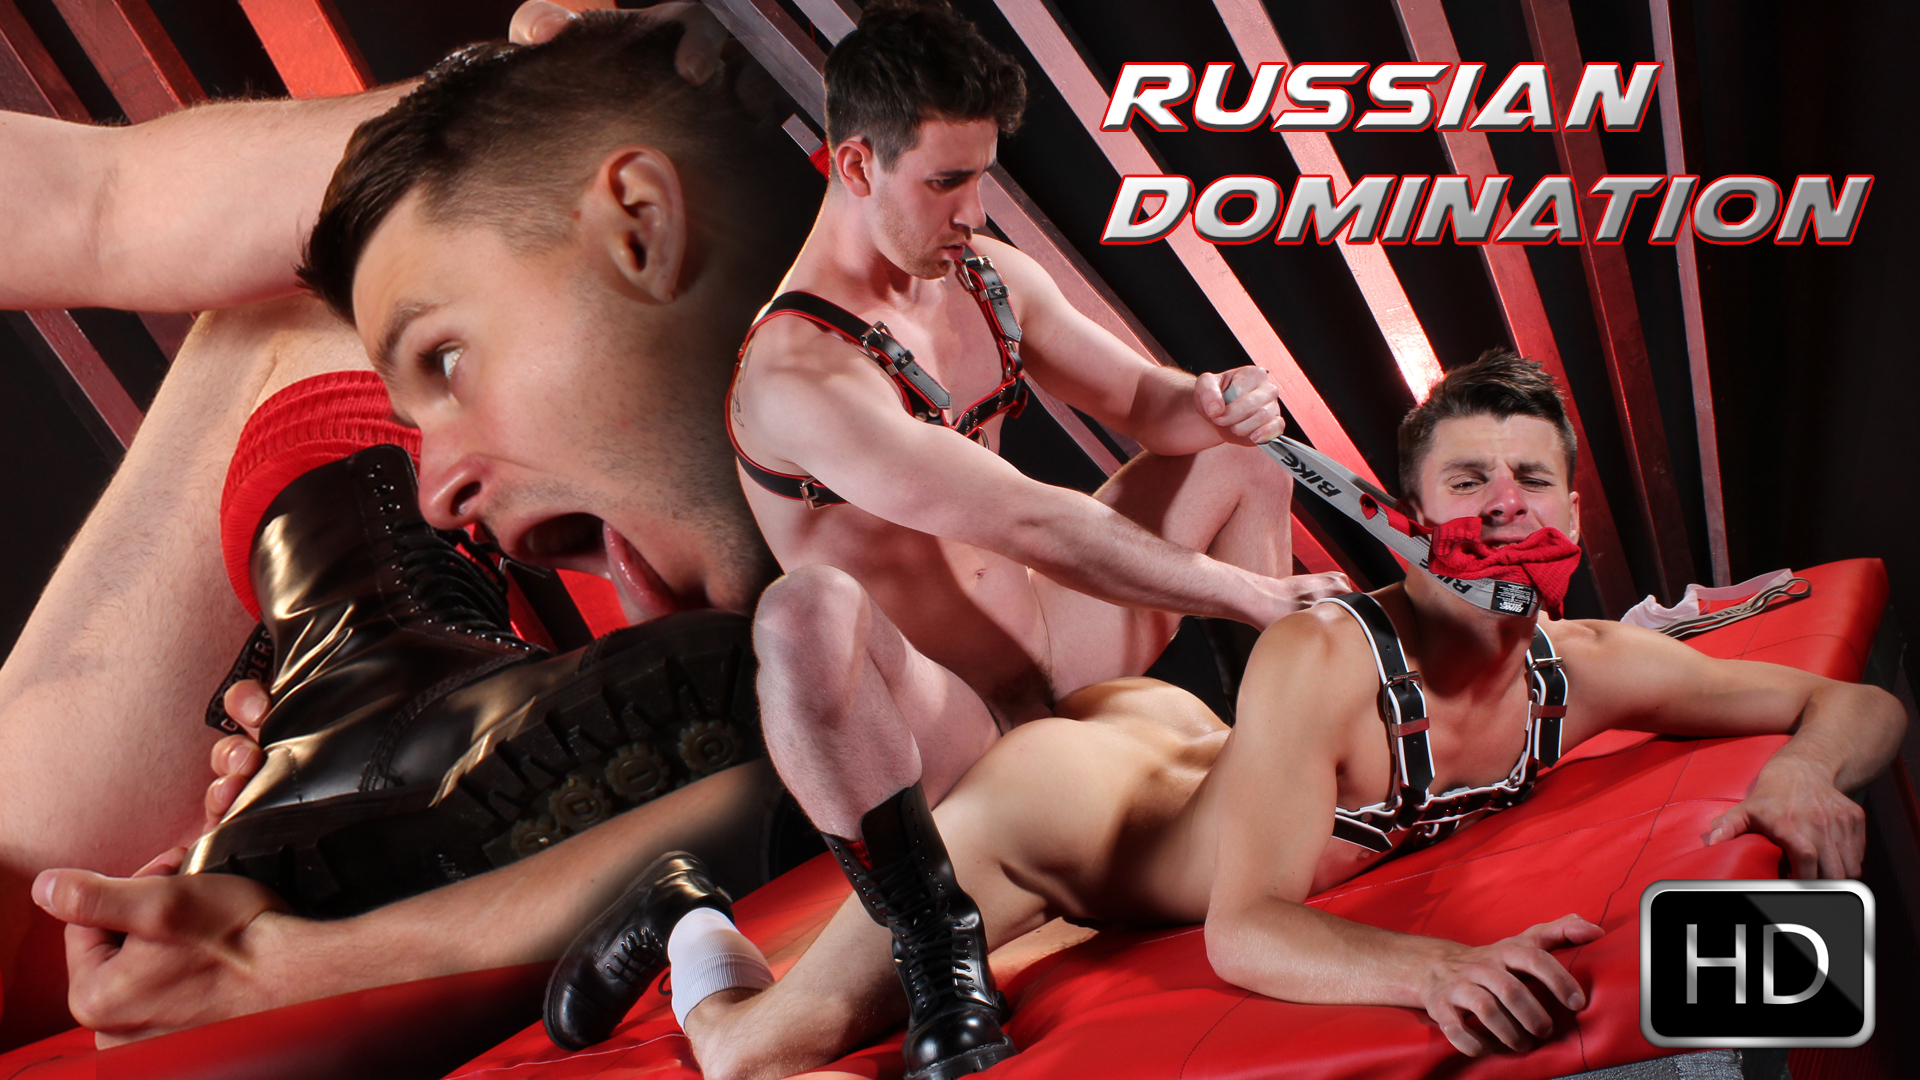 Russian-Domination_Cover.jpg